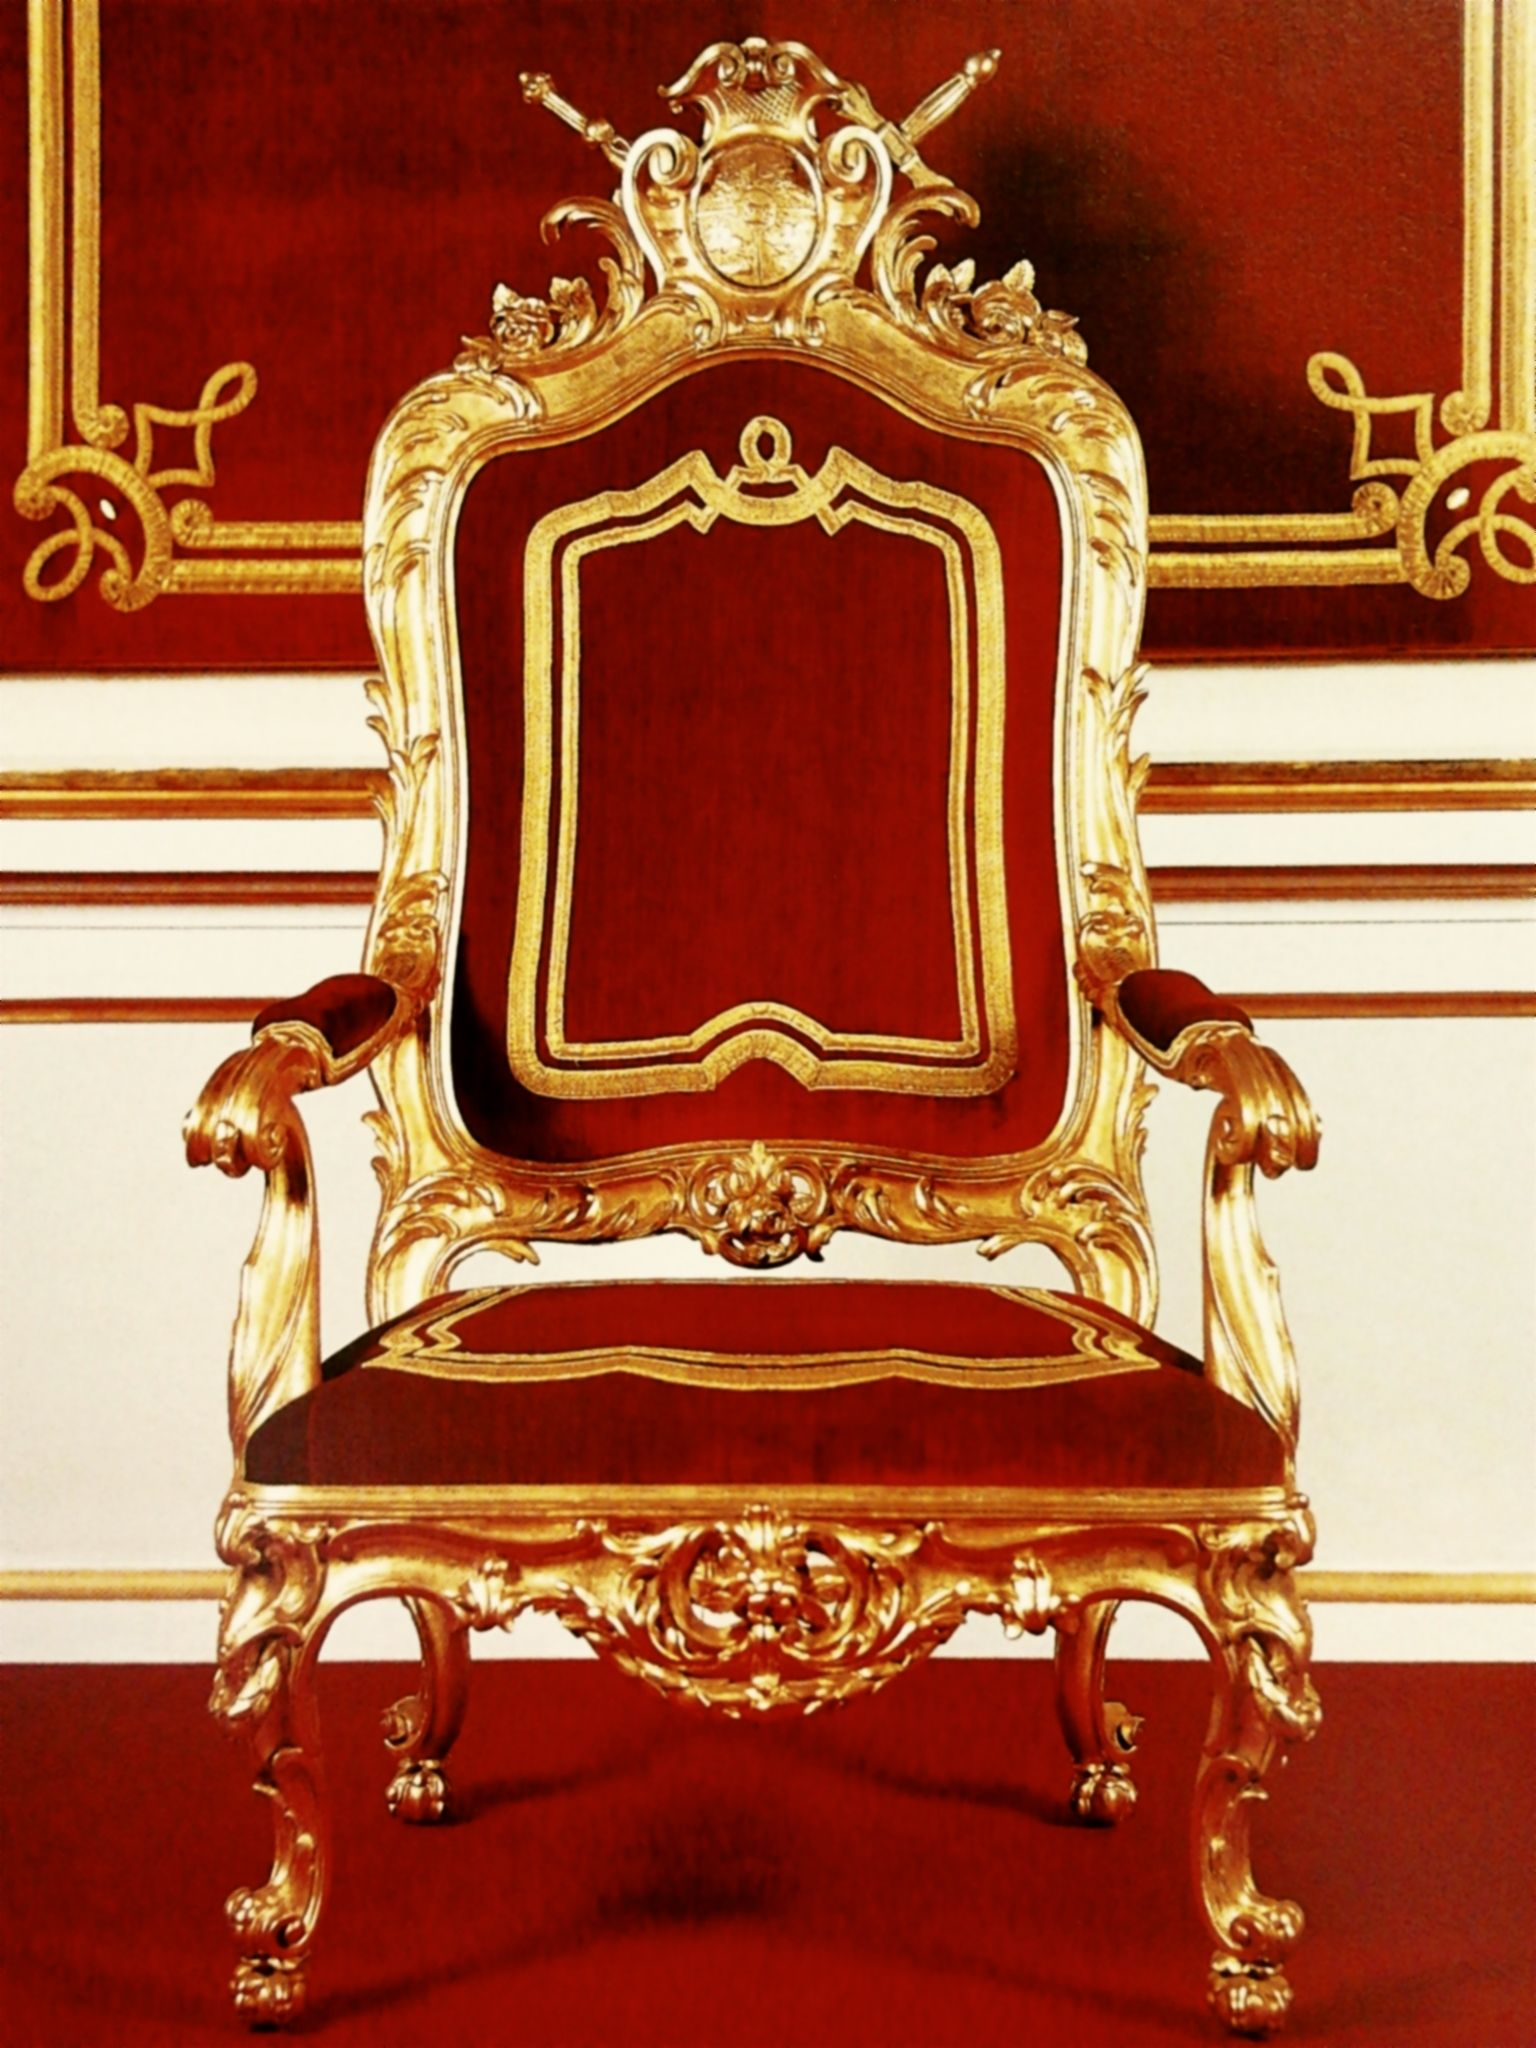 Stanislas August Of Poland Throne Chair, 1764, Royal Castle In Warsaw